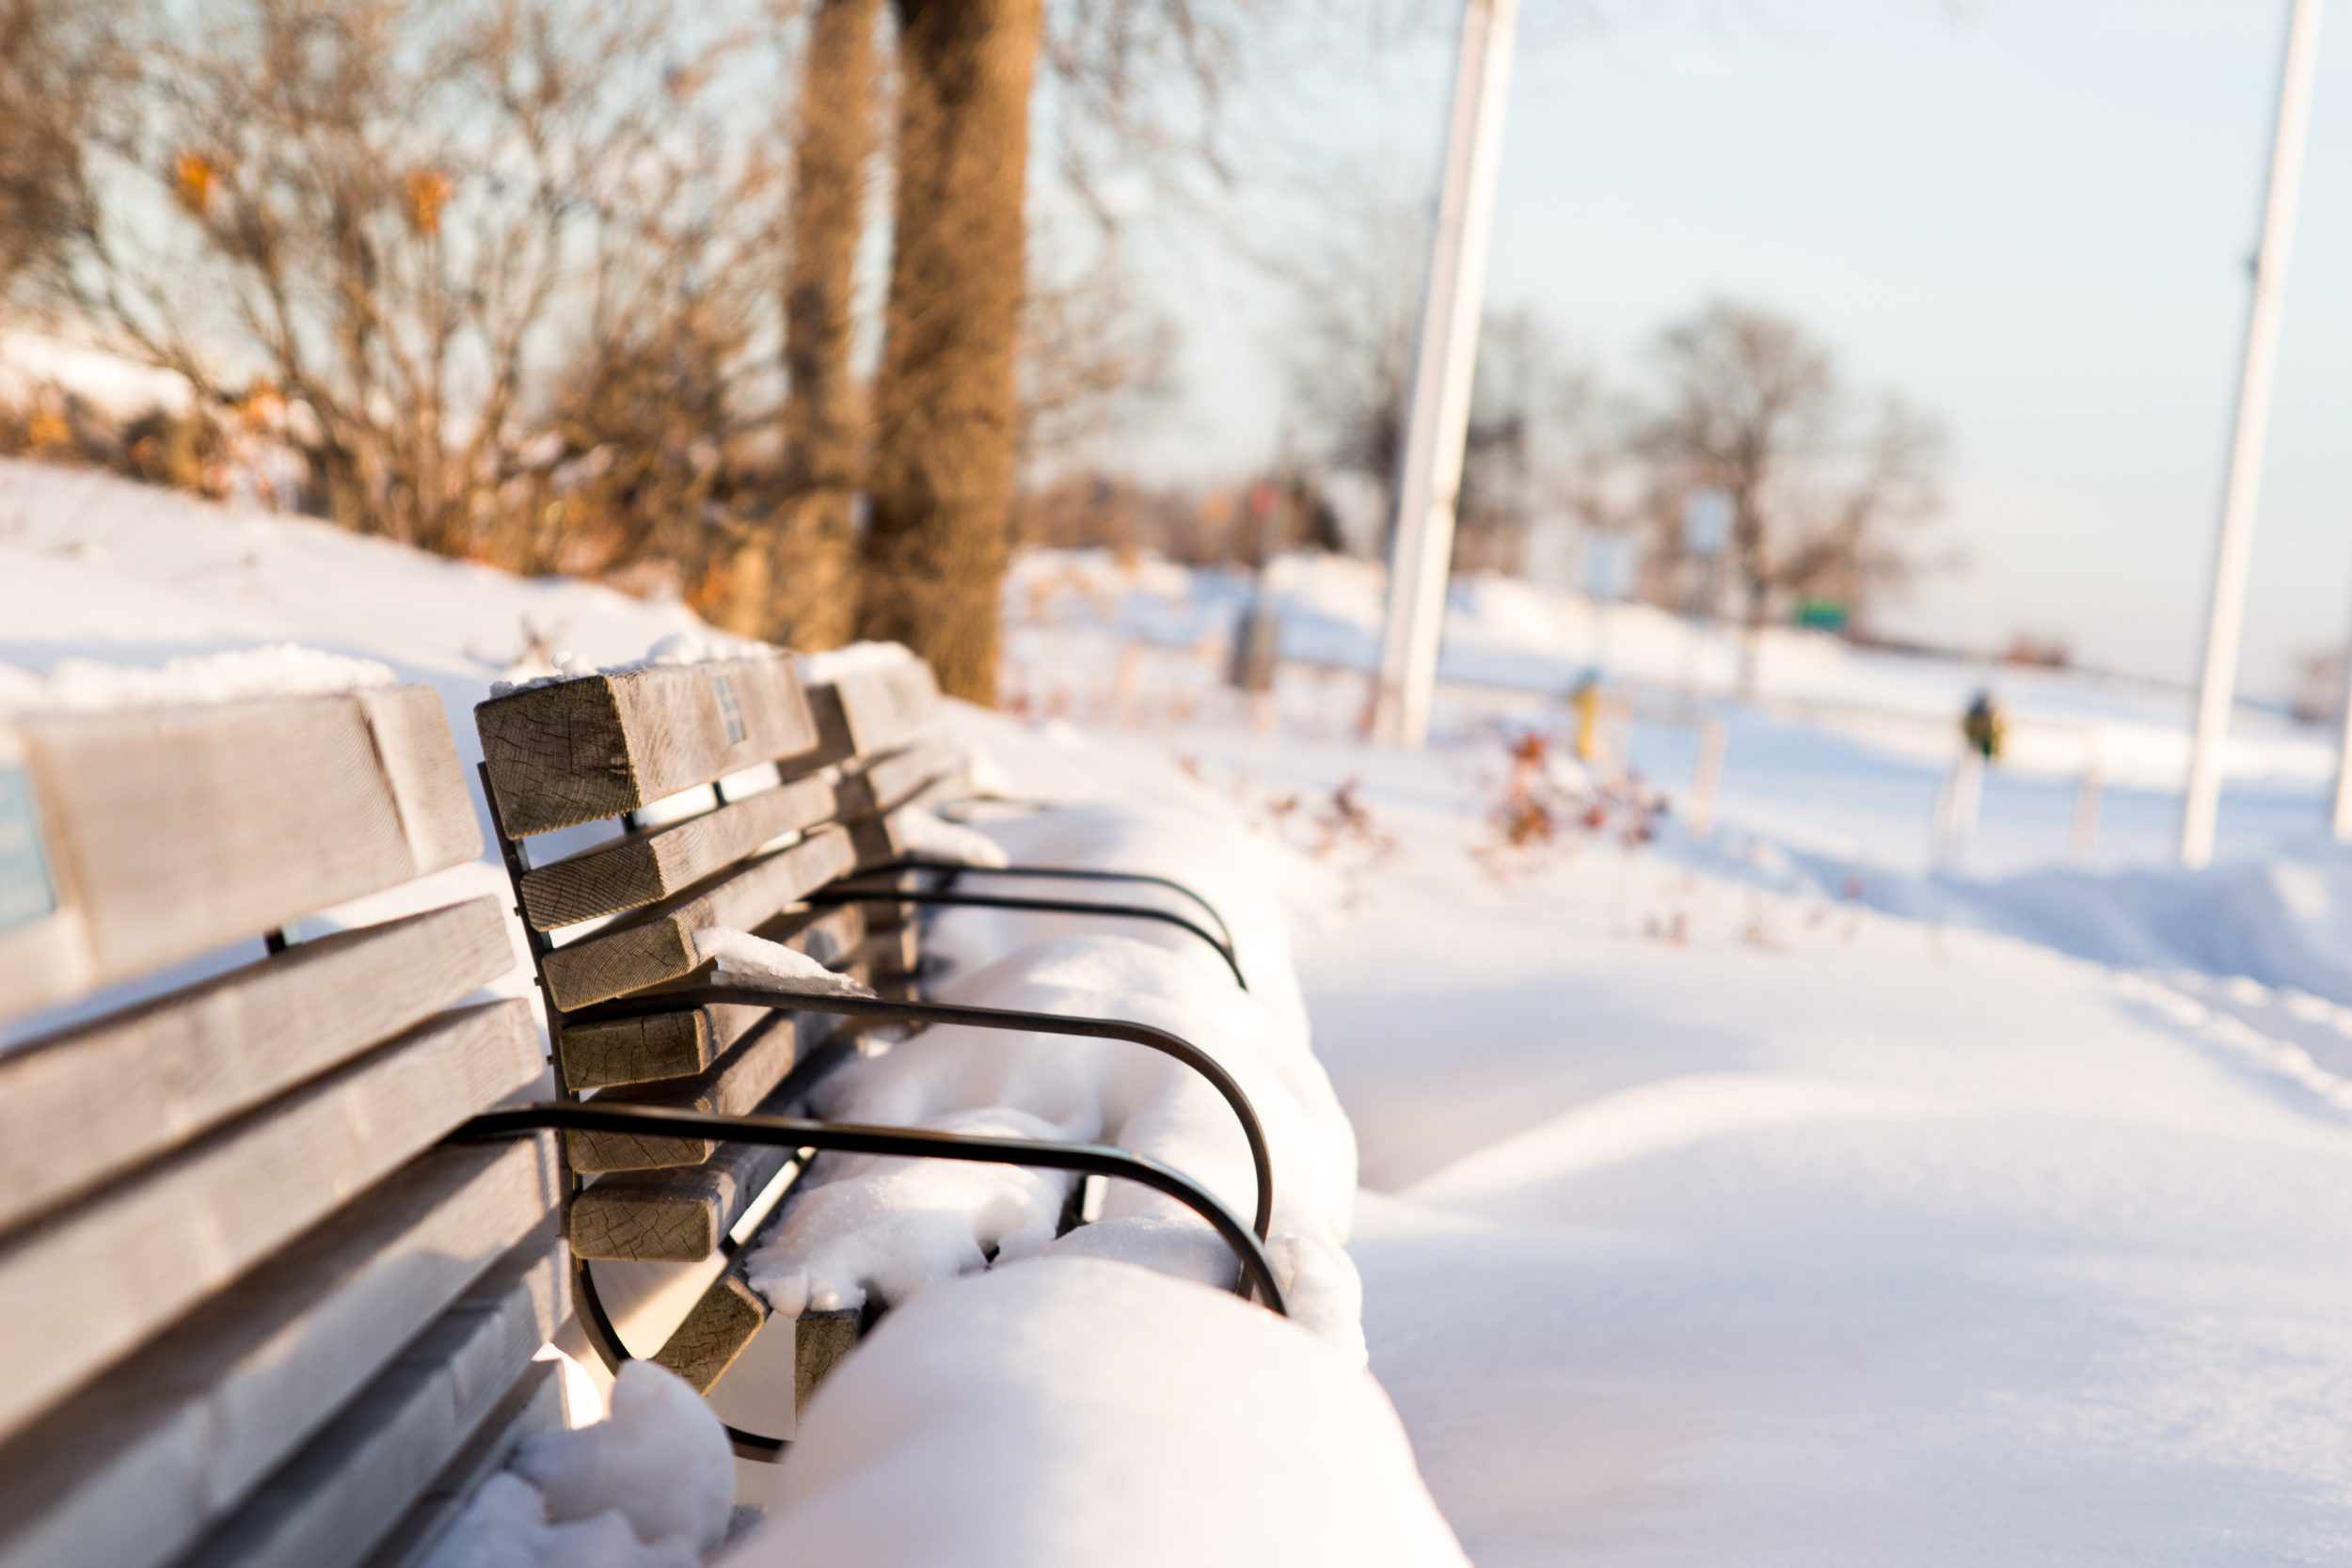 Benches by the waterfront covered in snow.